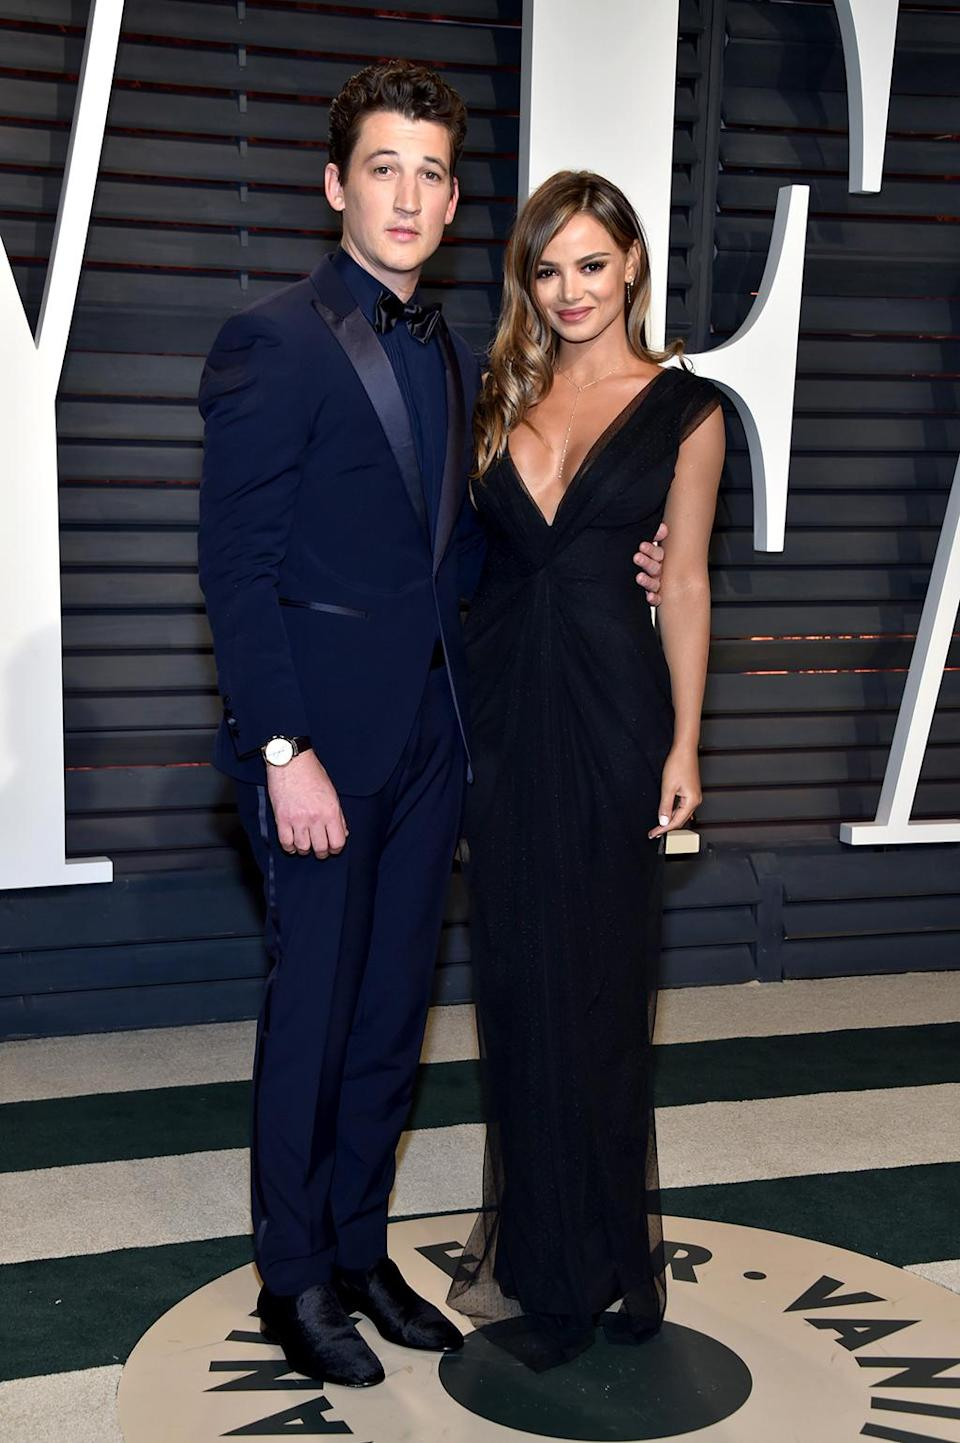 <p>Miles Teller and Keleigh Sperry attend the 2017 Vanity Fair Oscar Party hosted by Graydon Carter at Wallis Annenberg Center for the Performing Arts on February 26, 2017 in Beverly Hills, California. (Photo by Pascal Le Segretain/Getty Images) </p>